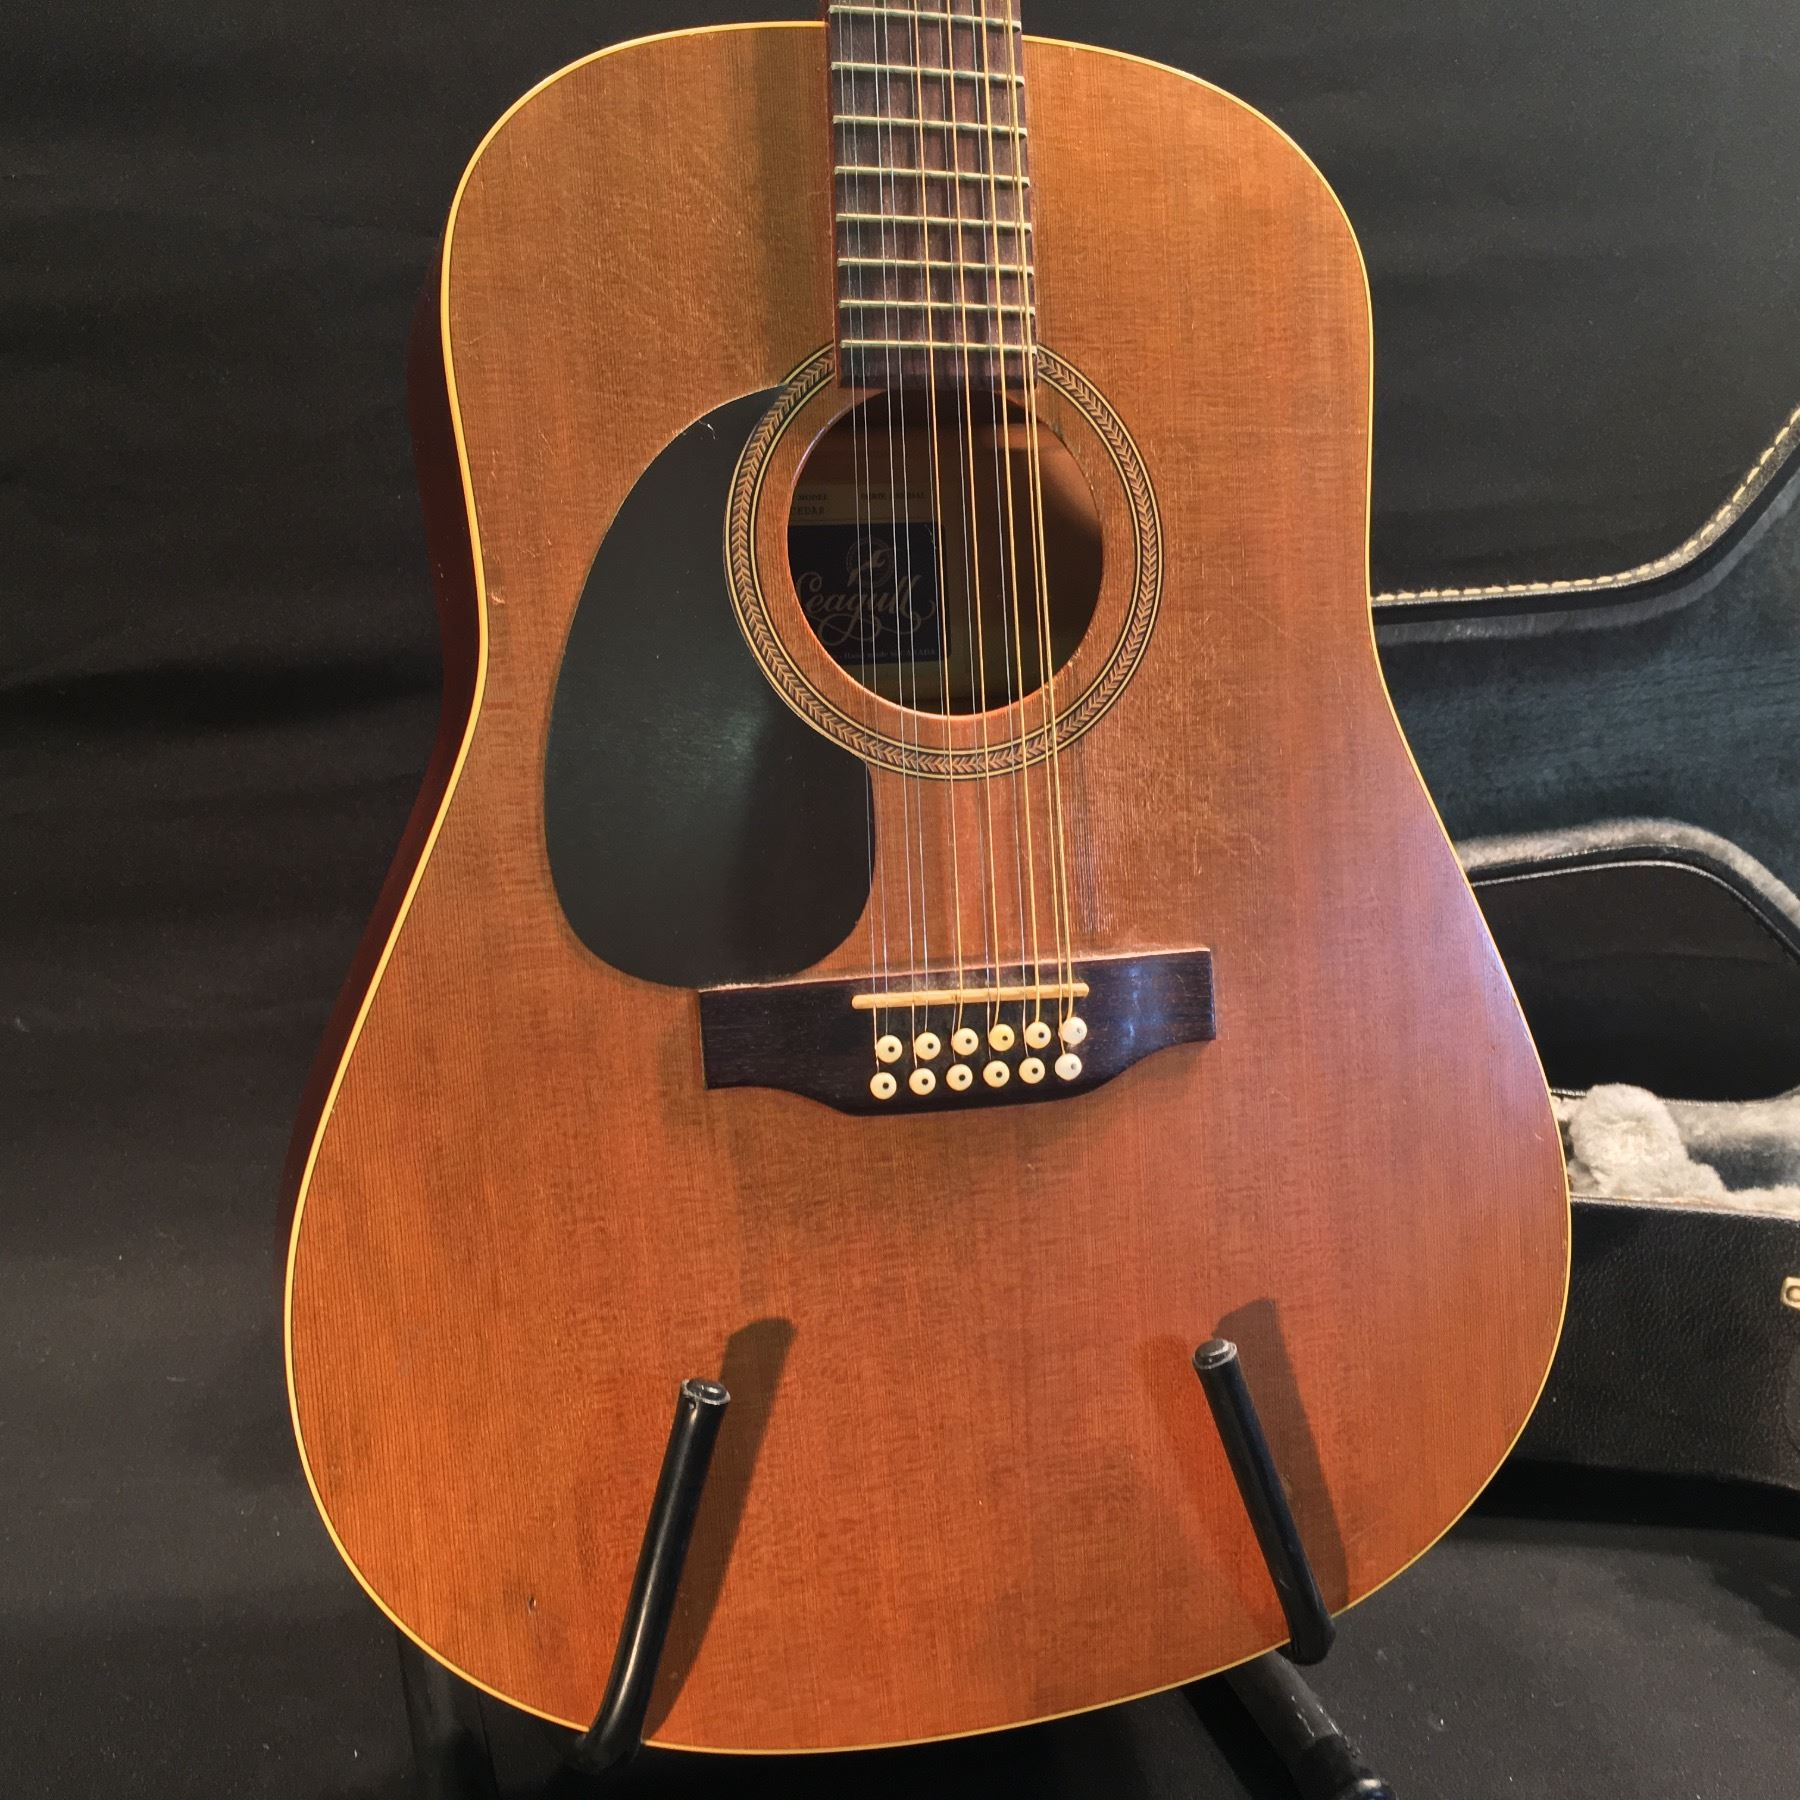 df4830e57f ... Image 4 : SEAGULL PLUS CEDAR 12 STRING ACOUSTIC GUITAR, SERIAL NUMBER  NOT LISTED, ...